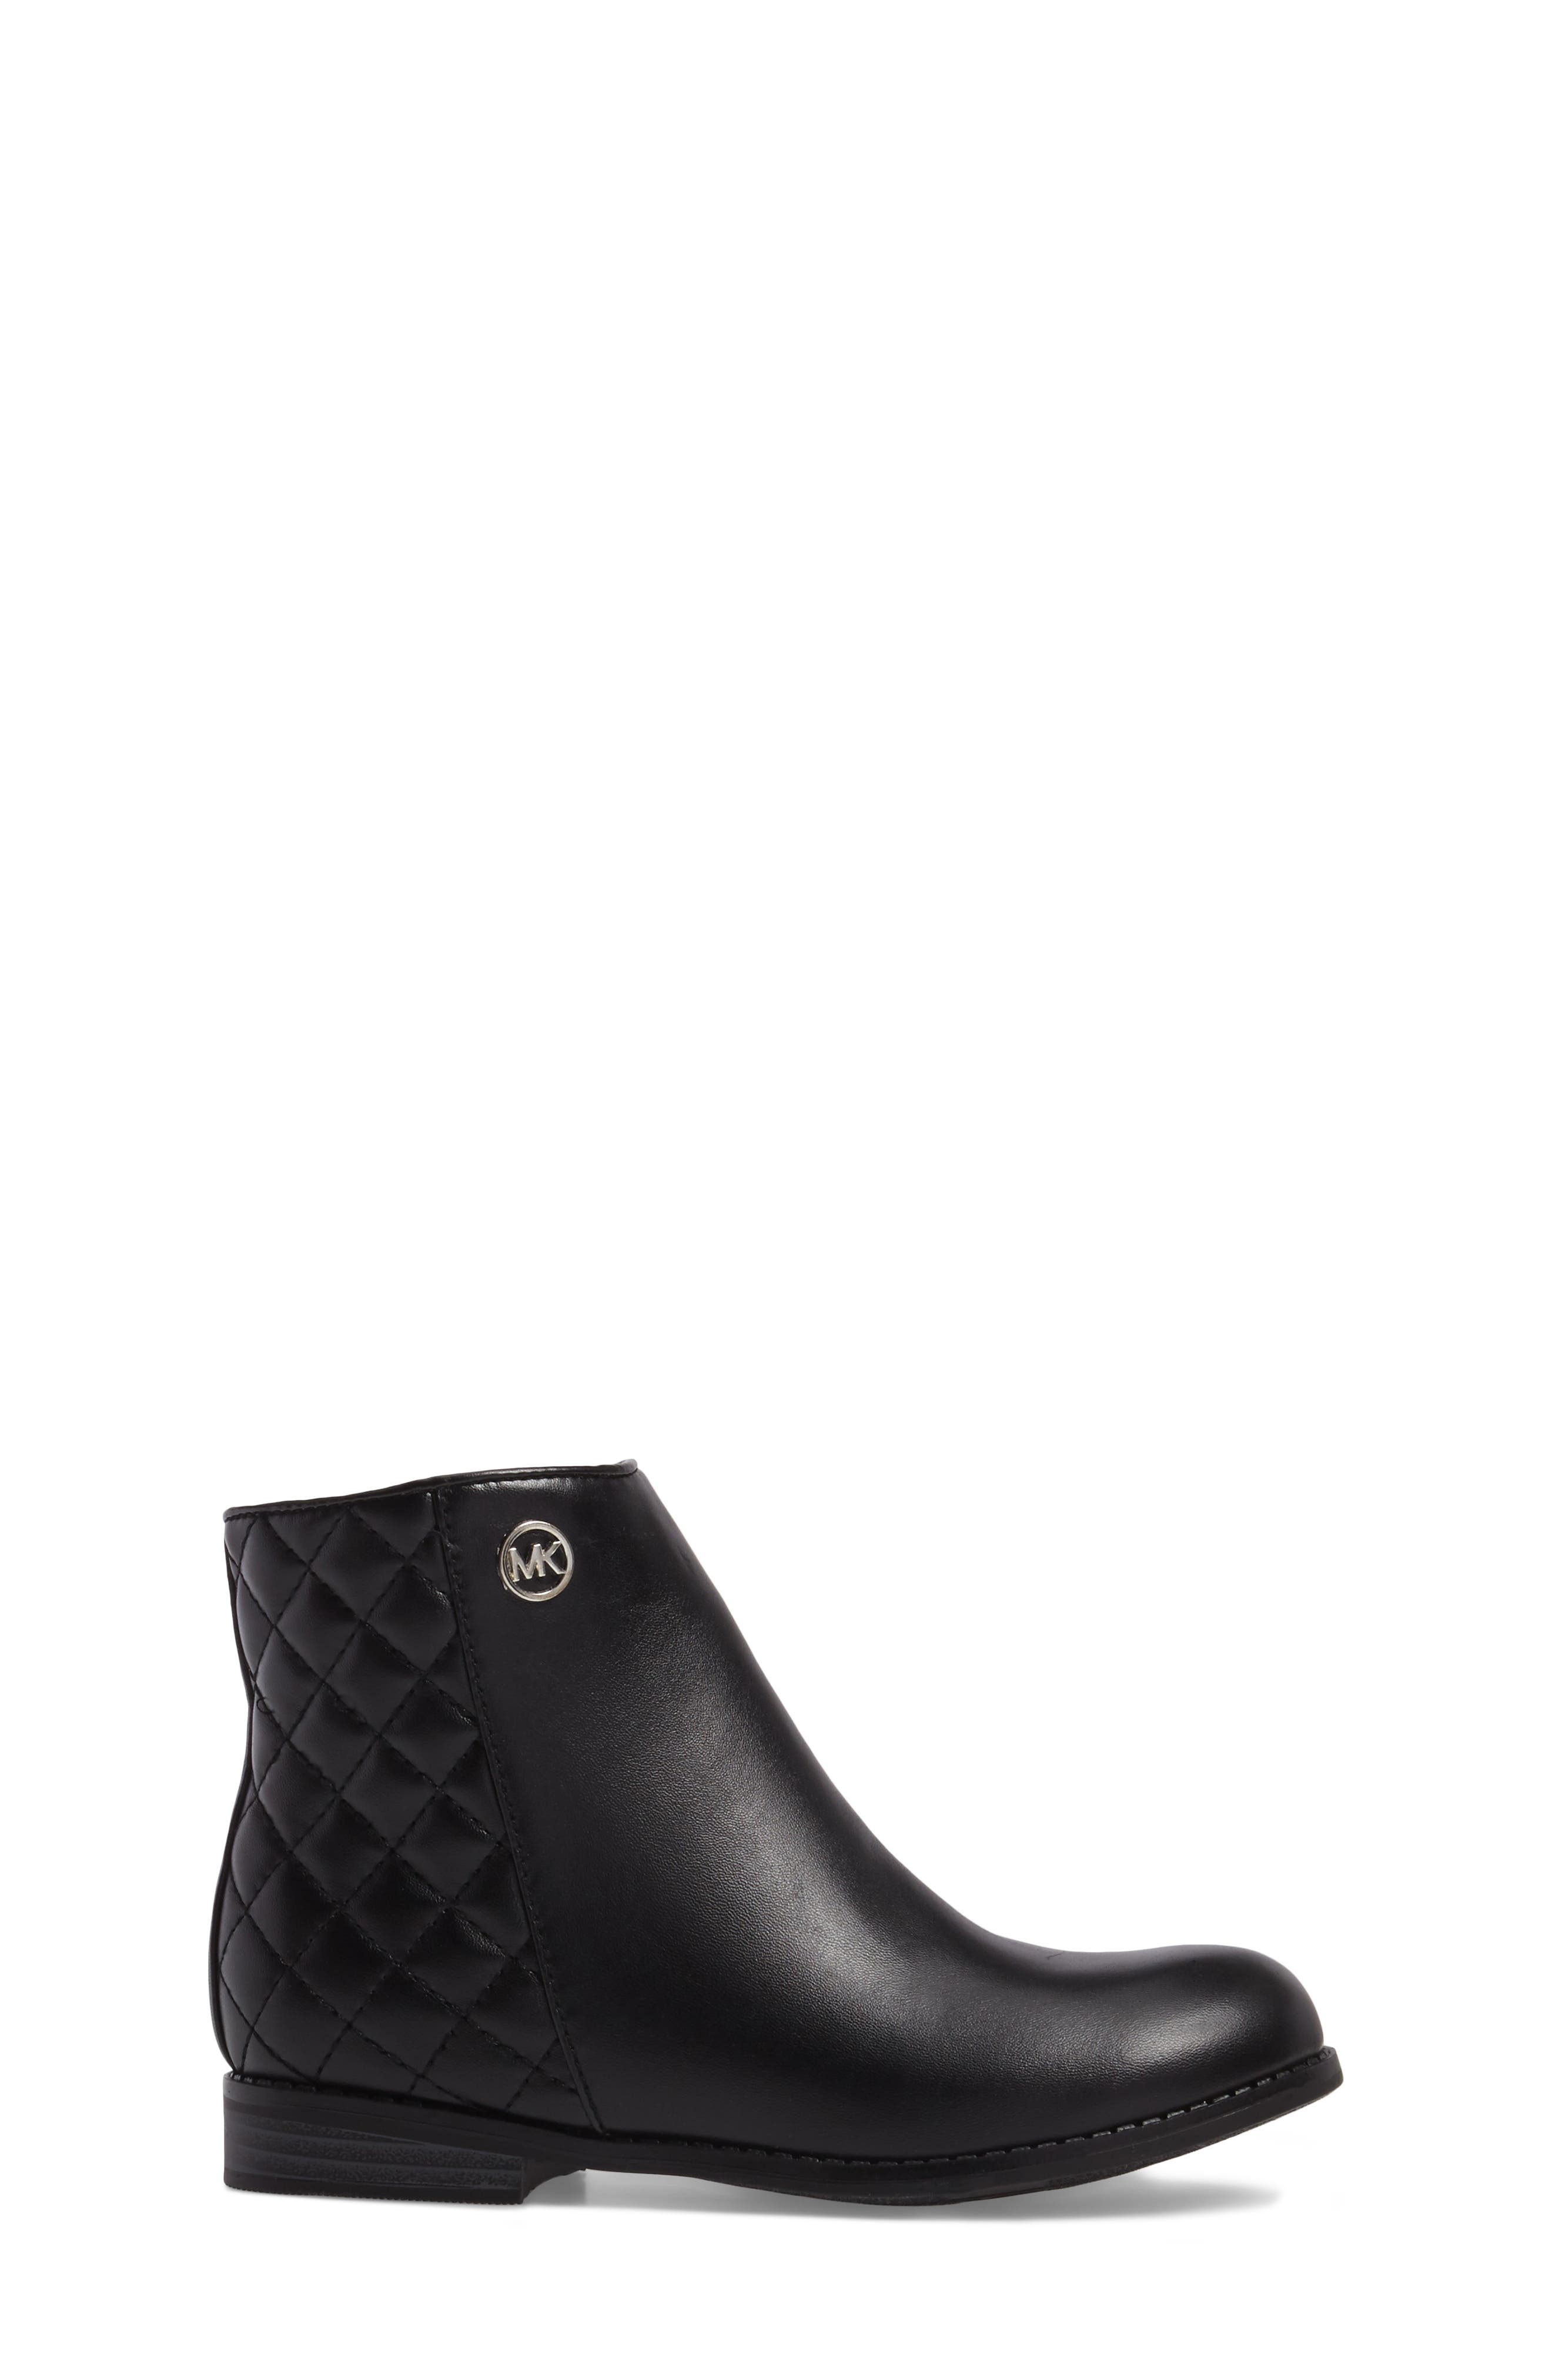 Emma Dede Quilted Bootie,                             Alternate thumbnail 3, color,                             003